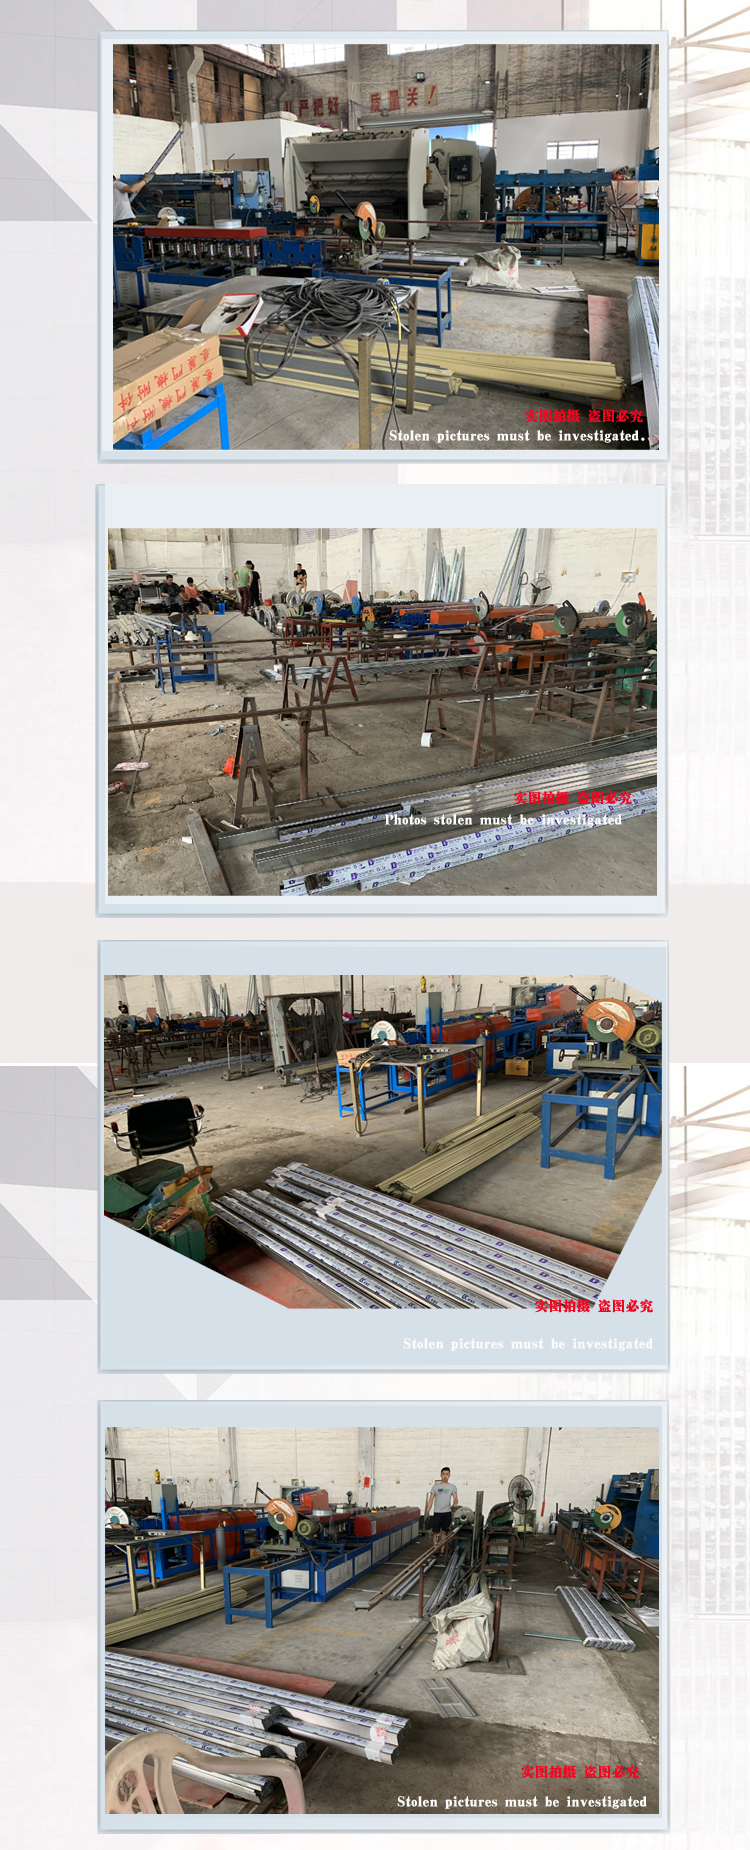 Electric roller shutter window Rolling up type security manual/electric operation aluminum window rolling shutters